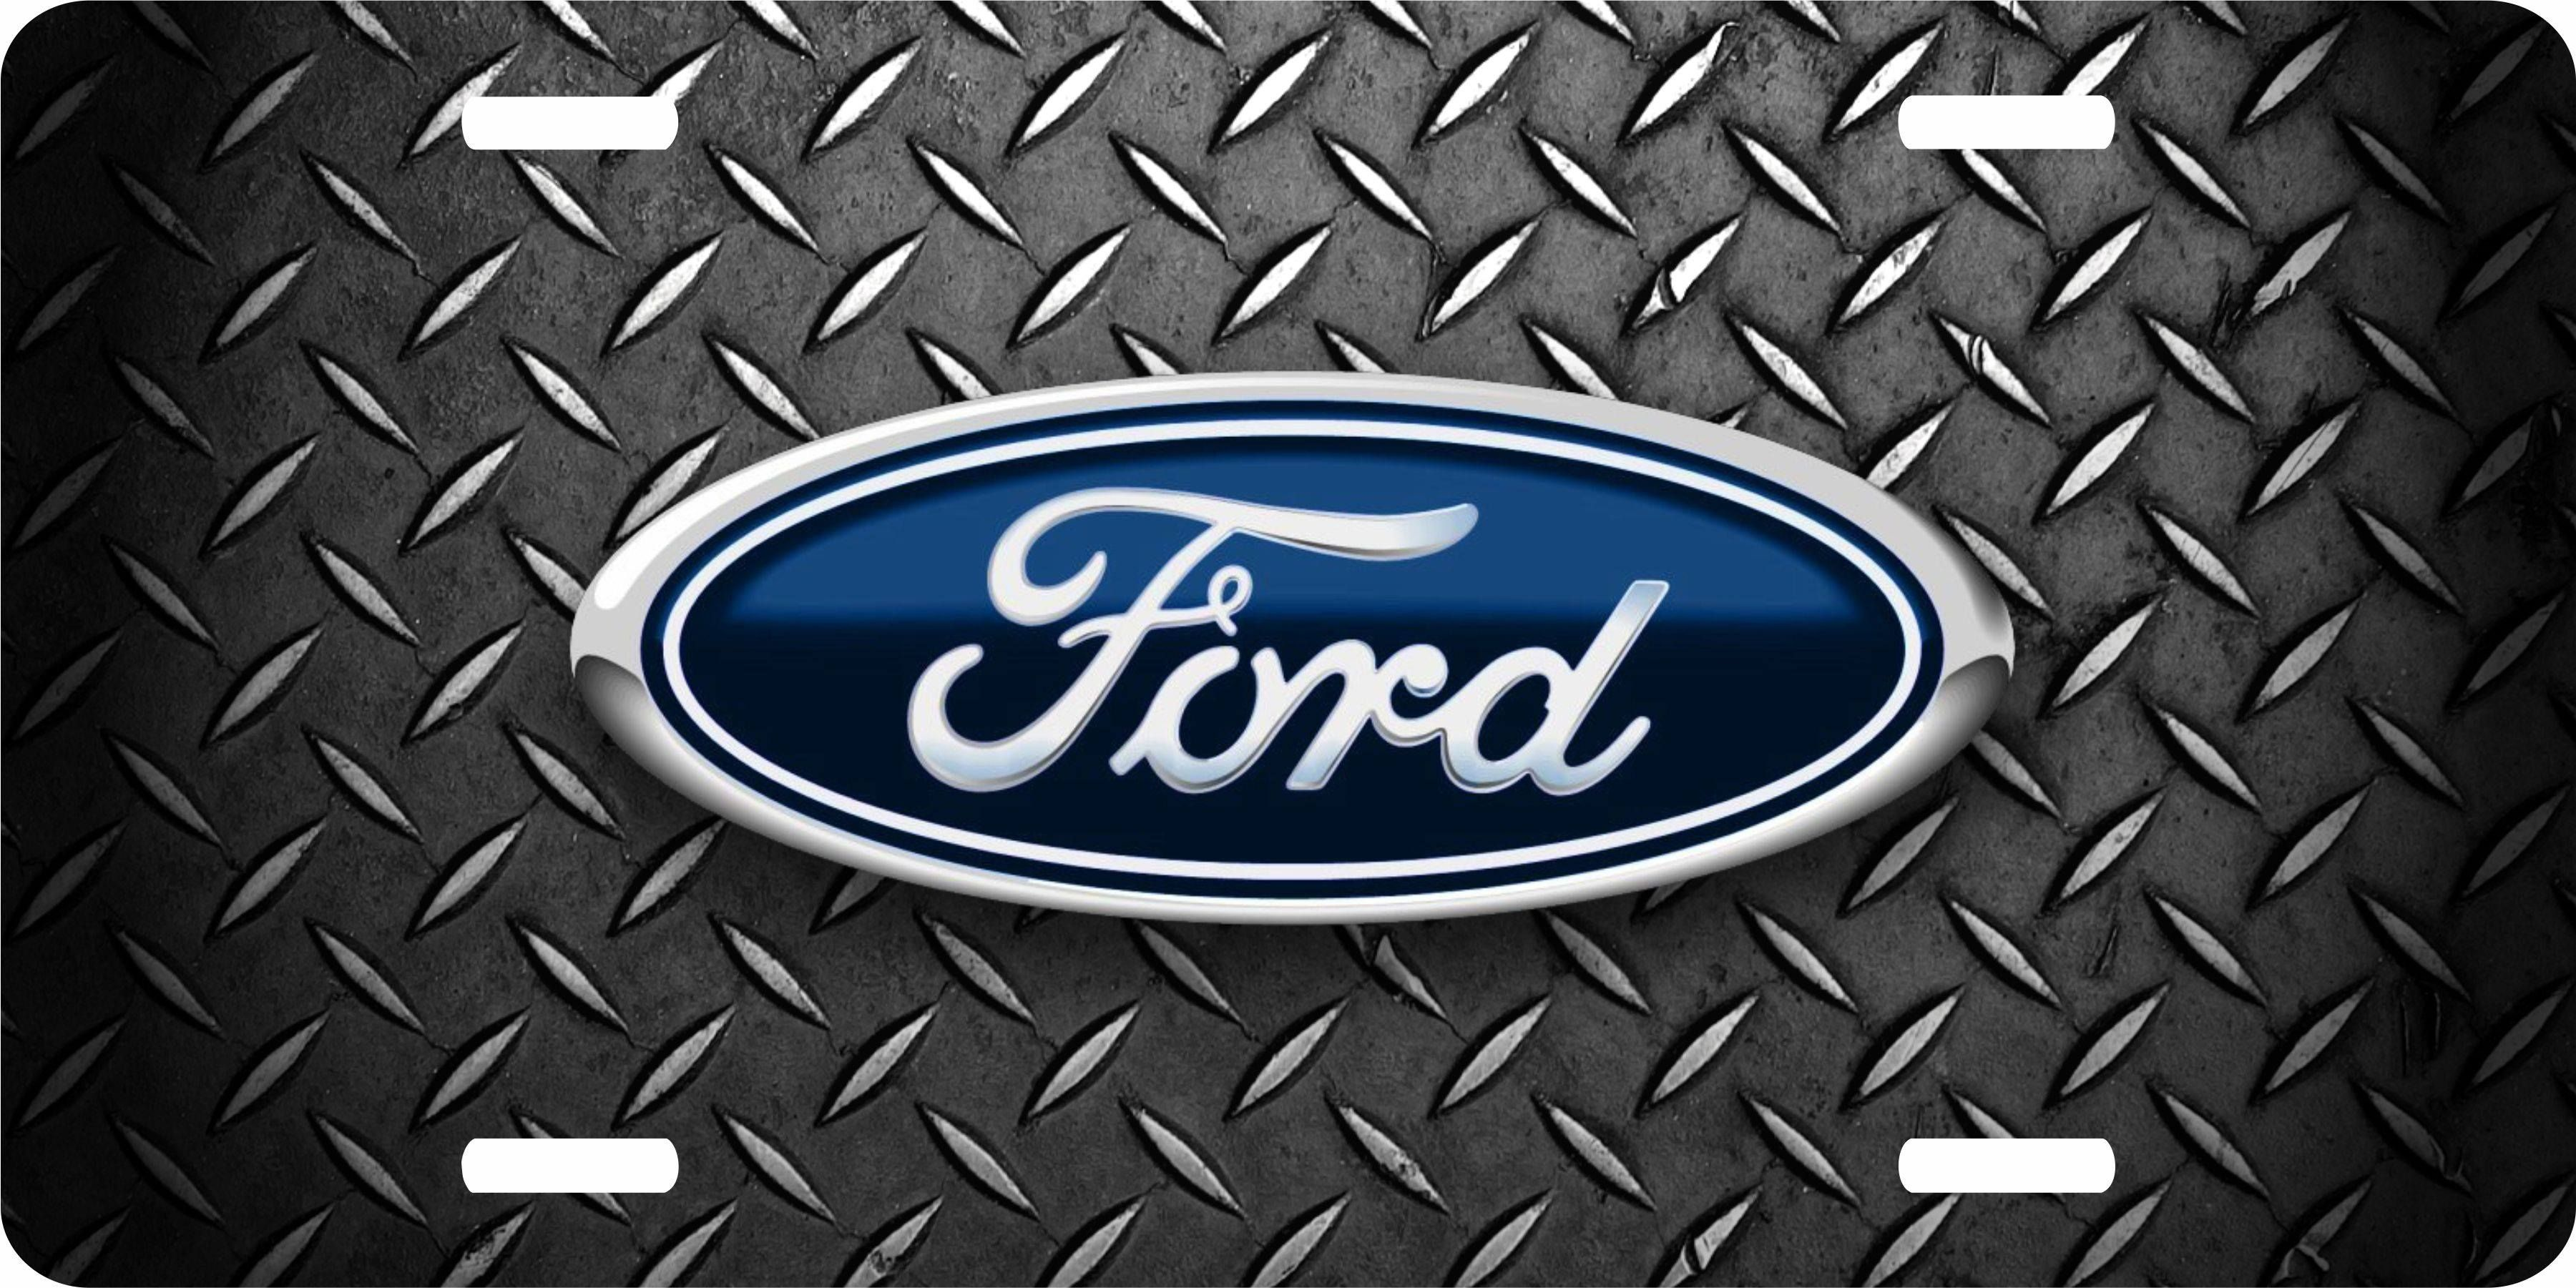 Ford Logo Army Four Wheel Hunt Novelty Animal Vanity Truck Car